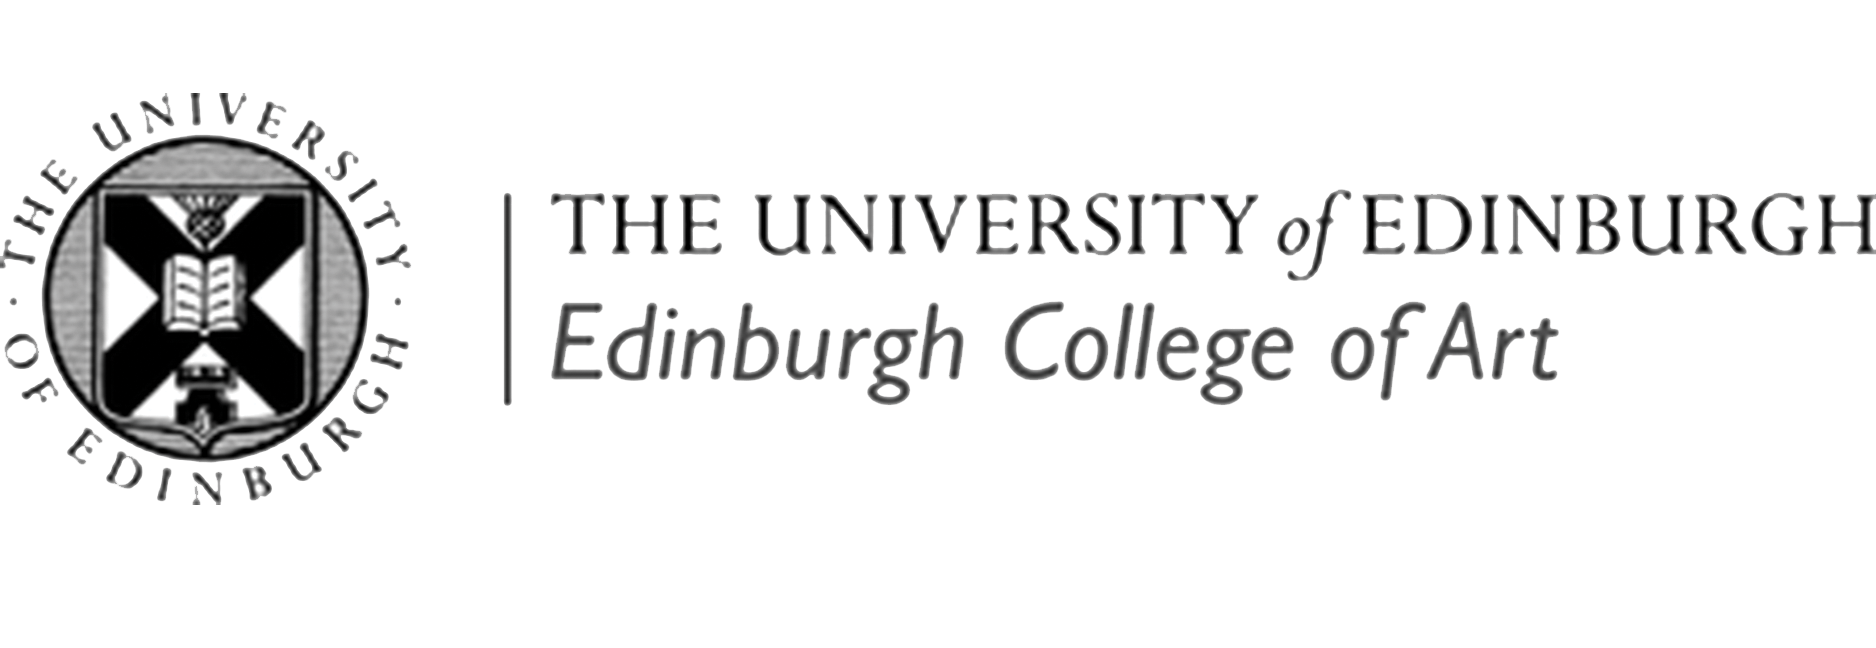 Edinburgh College of Art logo